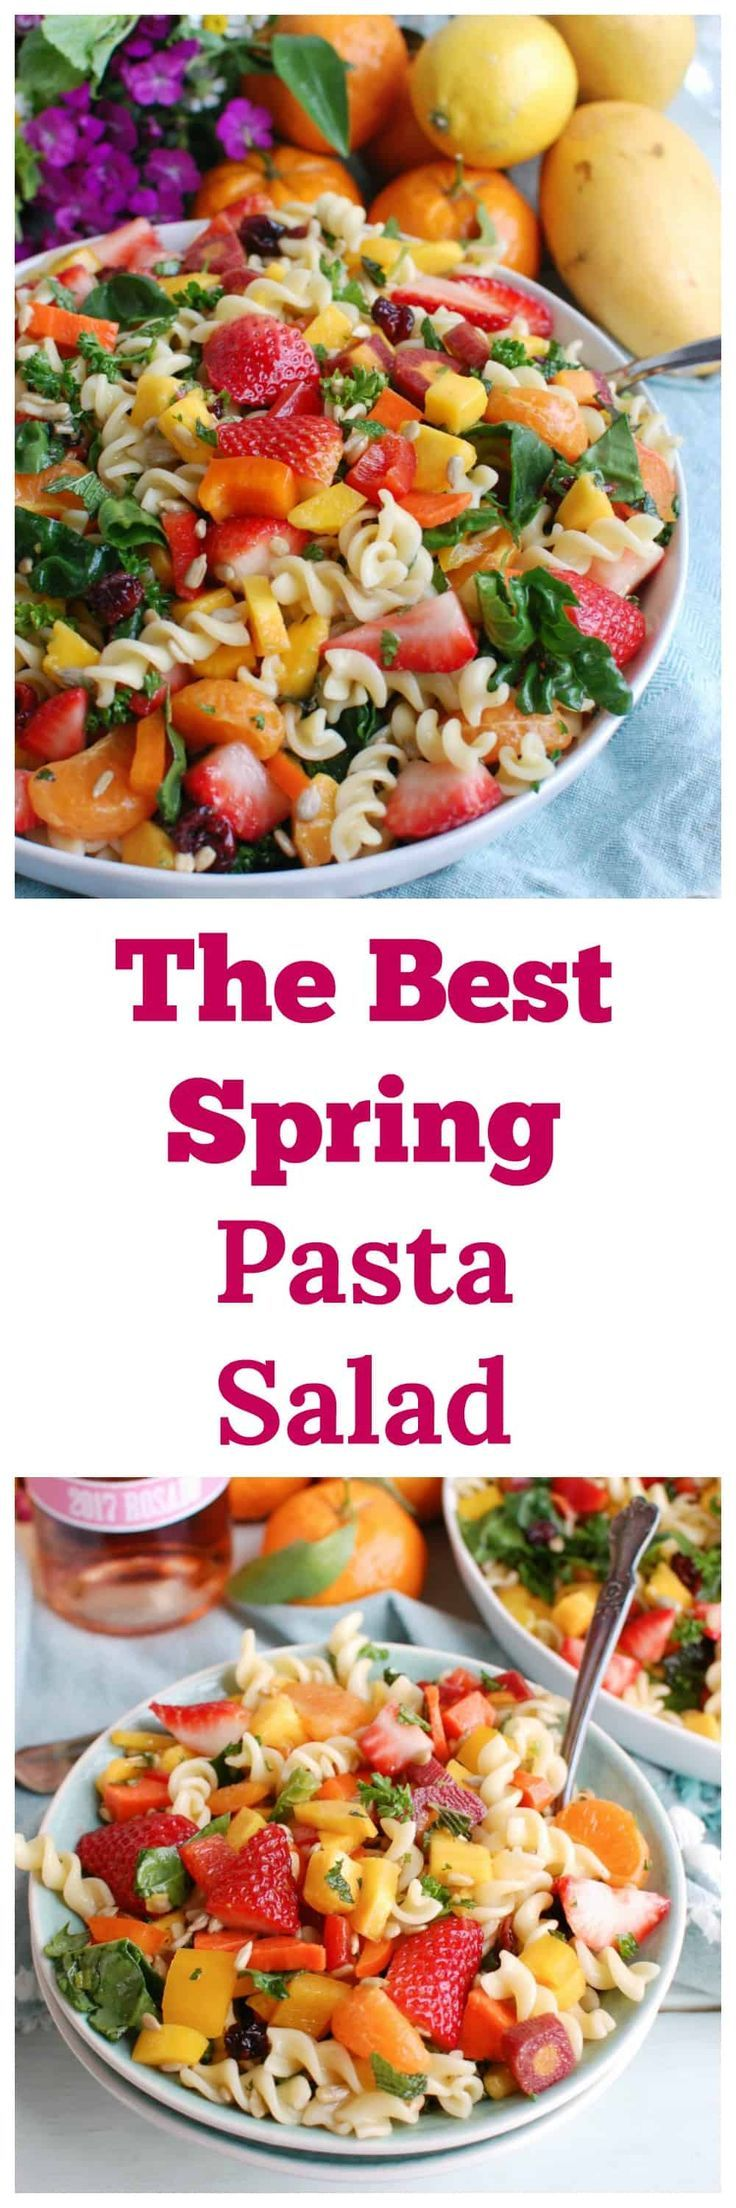 This Spring Pasta Salad is packed with healthy ingredients to create the perfect side dish for your spring brunch, Mother's Day or a summer bbq or picnic. The stars of this pasta dish are the sweet mango, mandarins and strawberries paired with the fresh vegetables and healthy lemon honey dressing. / acedarspoon.com #salad #pastasalad #fruit #mango #strawberries #healthysalad #lunch #sidedish #picnic #pasta #vegetarian #cleaneating #easyrecipe